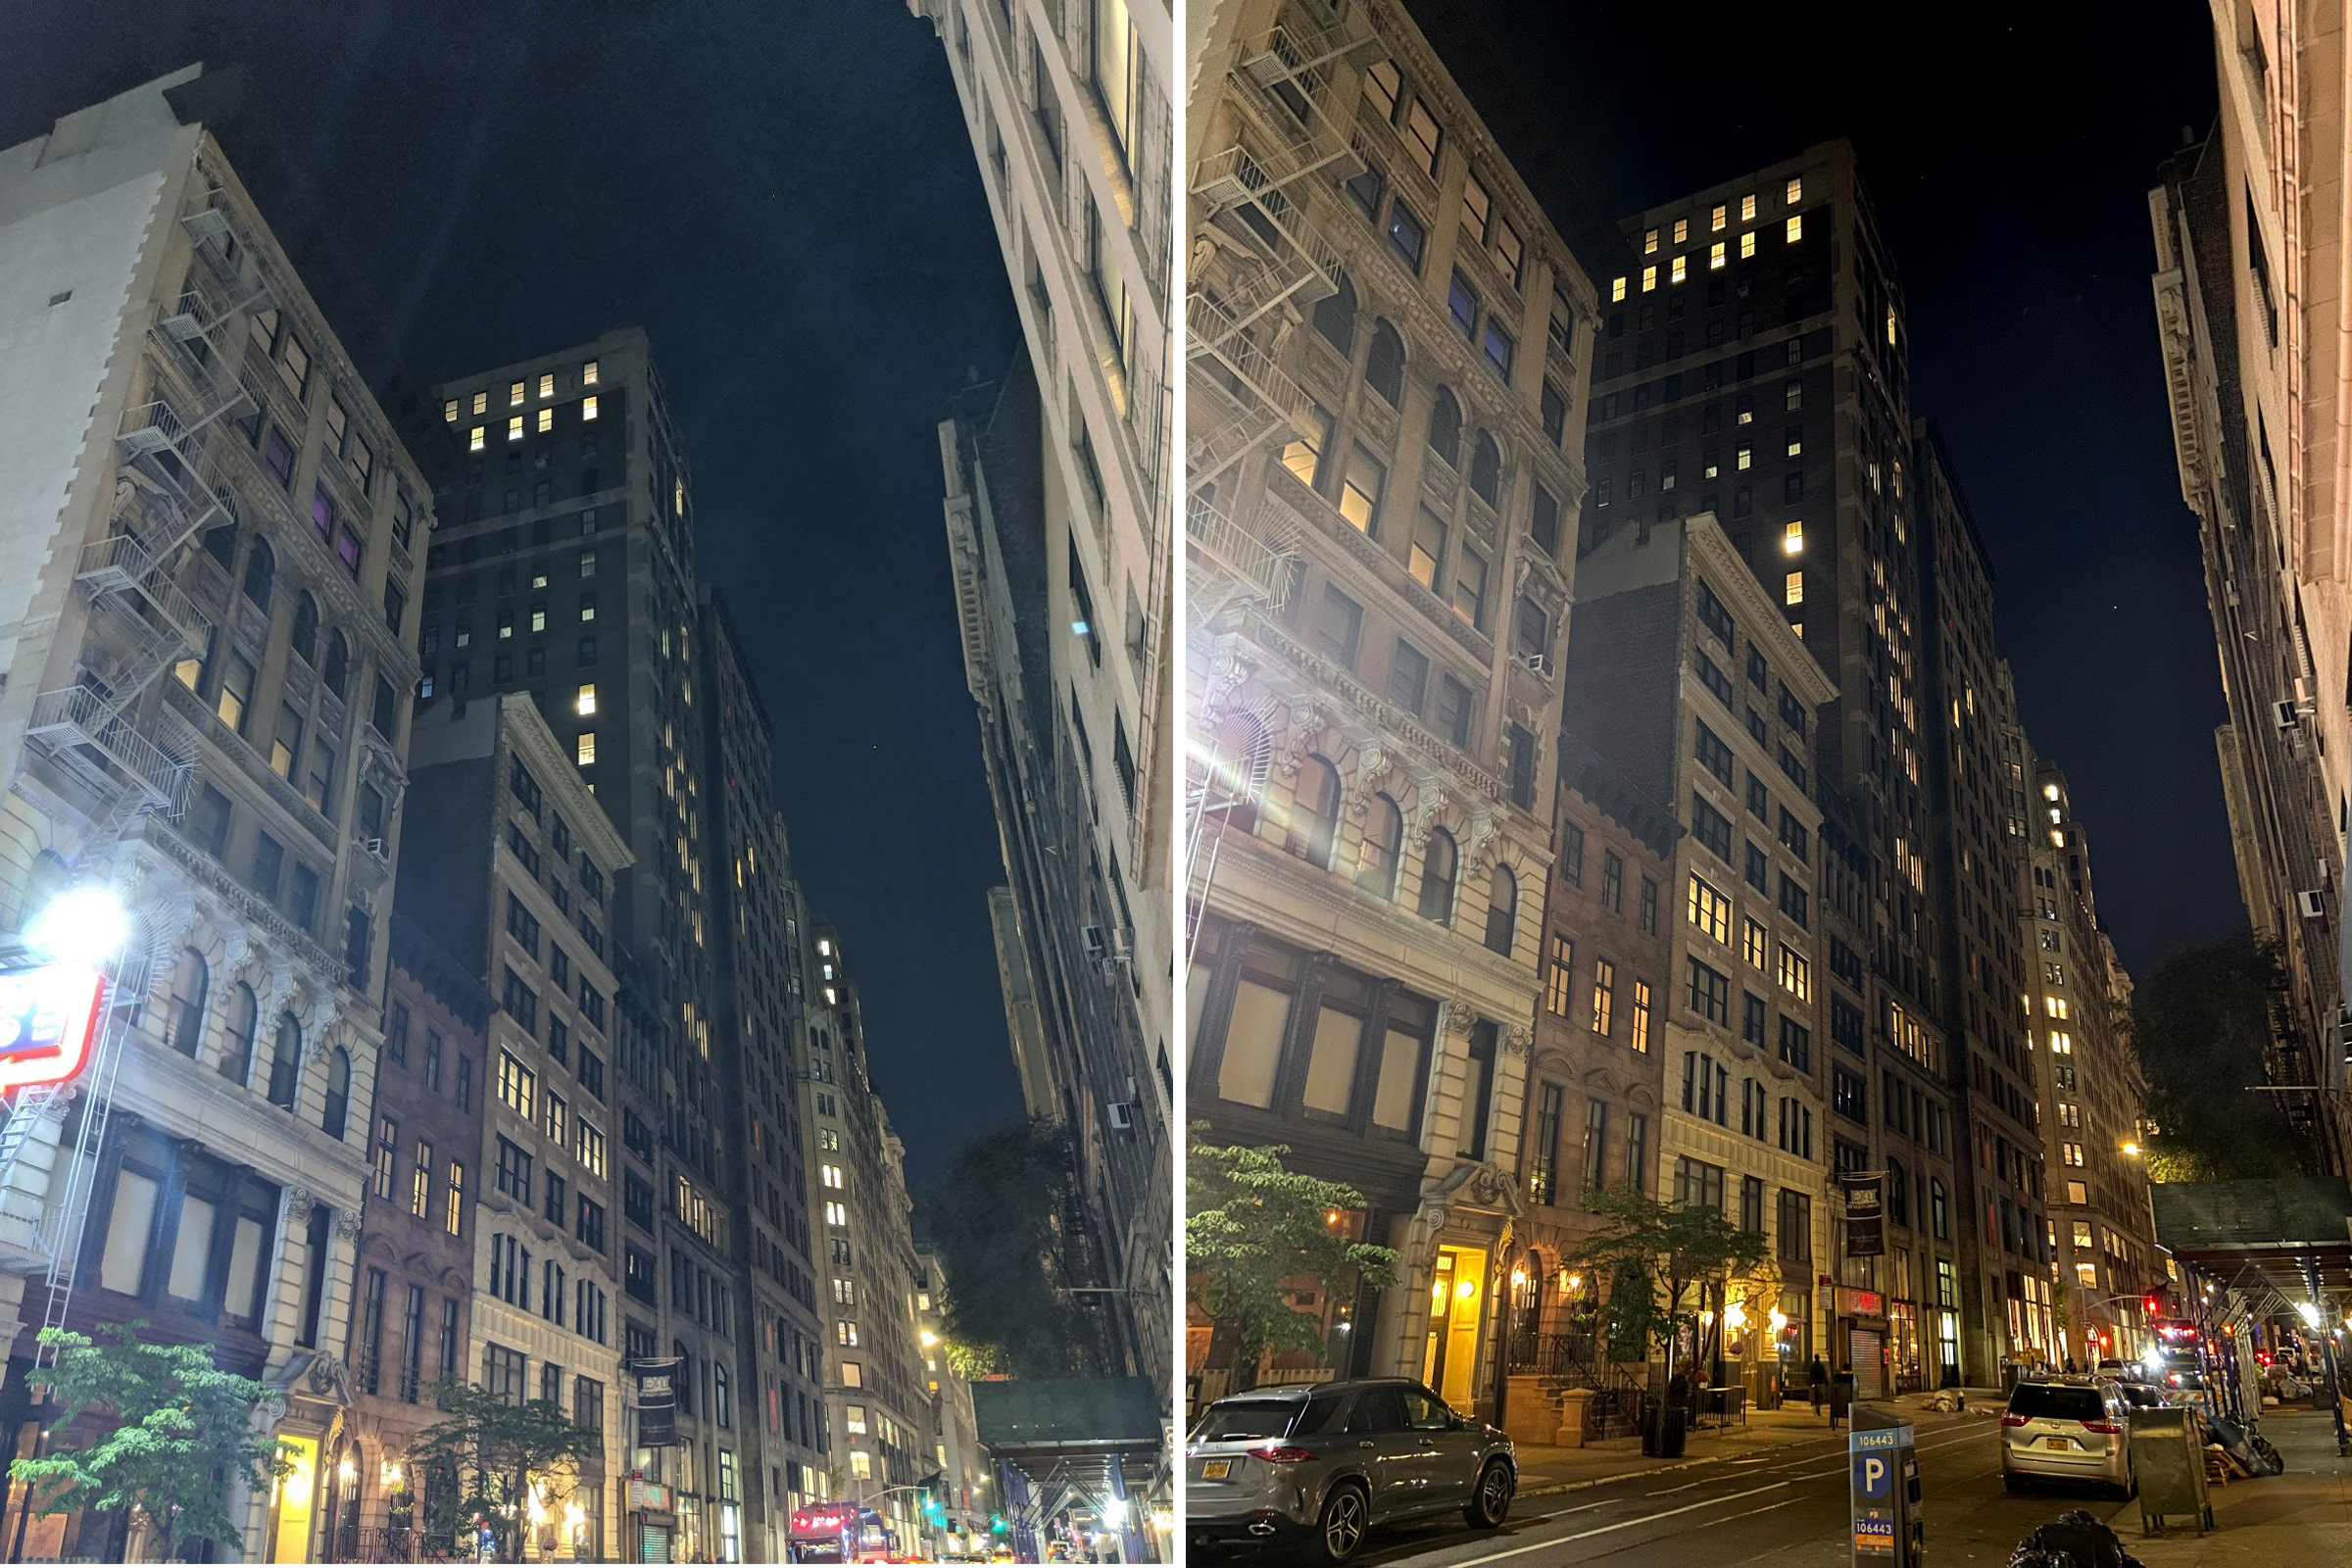 Comparatif photo de nuit en ville : Google Pixel 4 vs iPhone 11